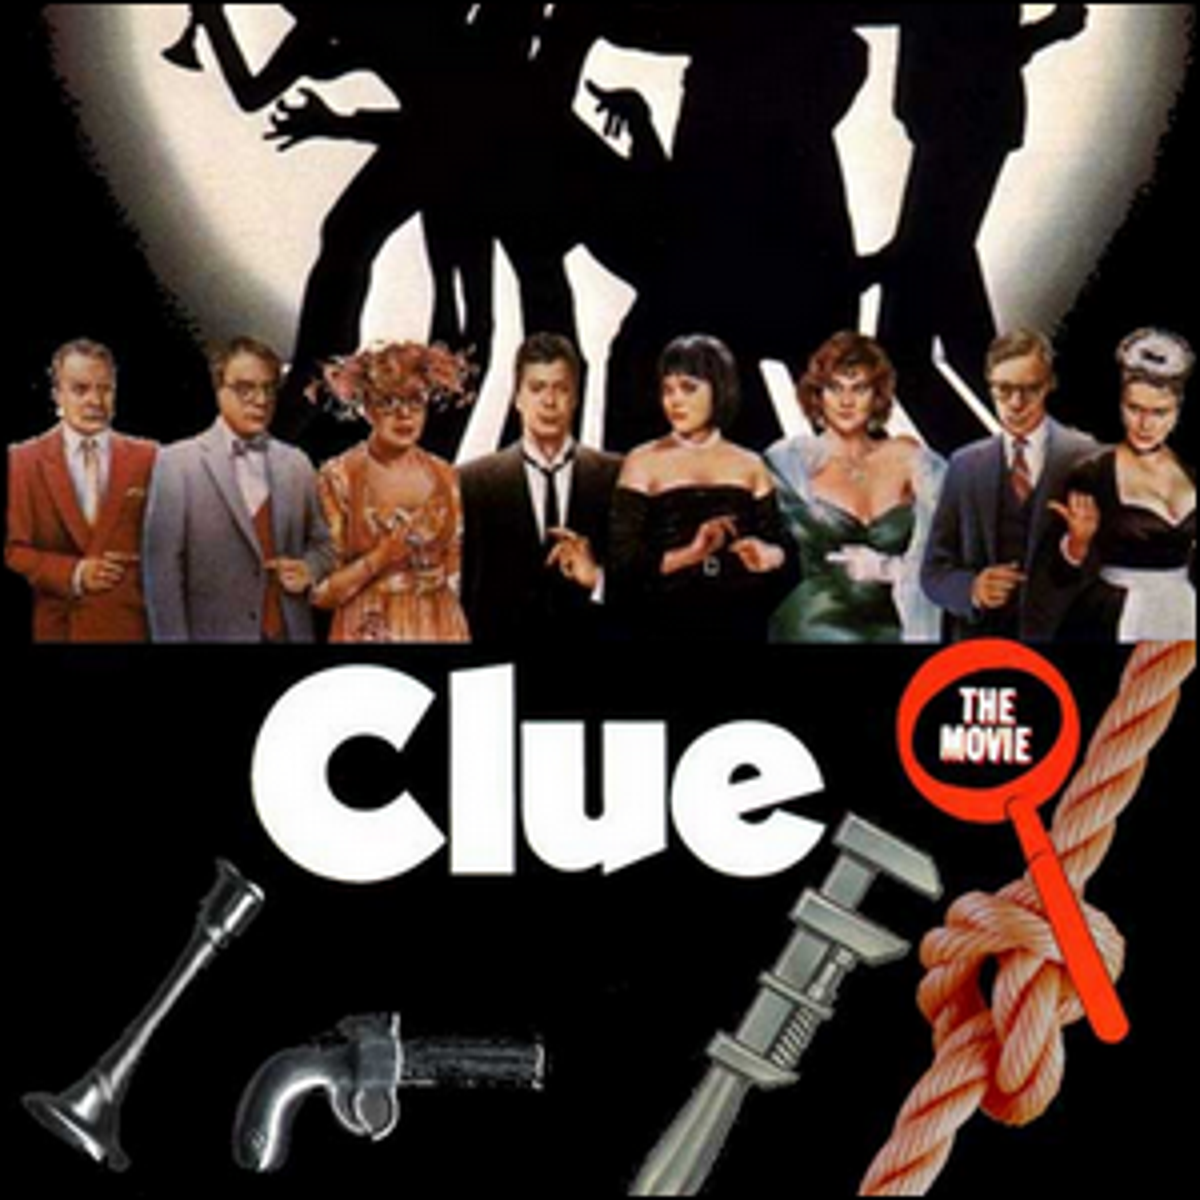 A movie poster for Clue, depicting the cast and the weapons used in the game and film.